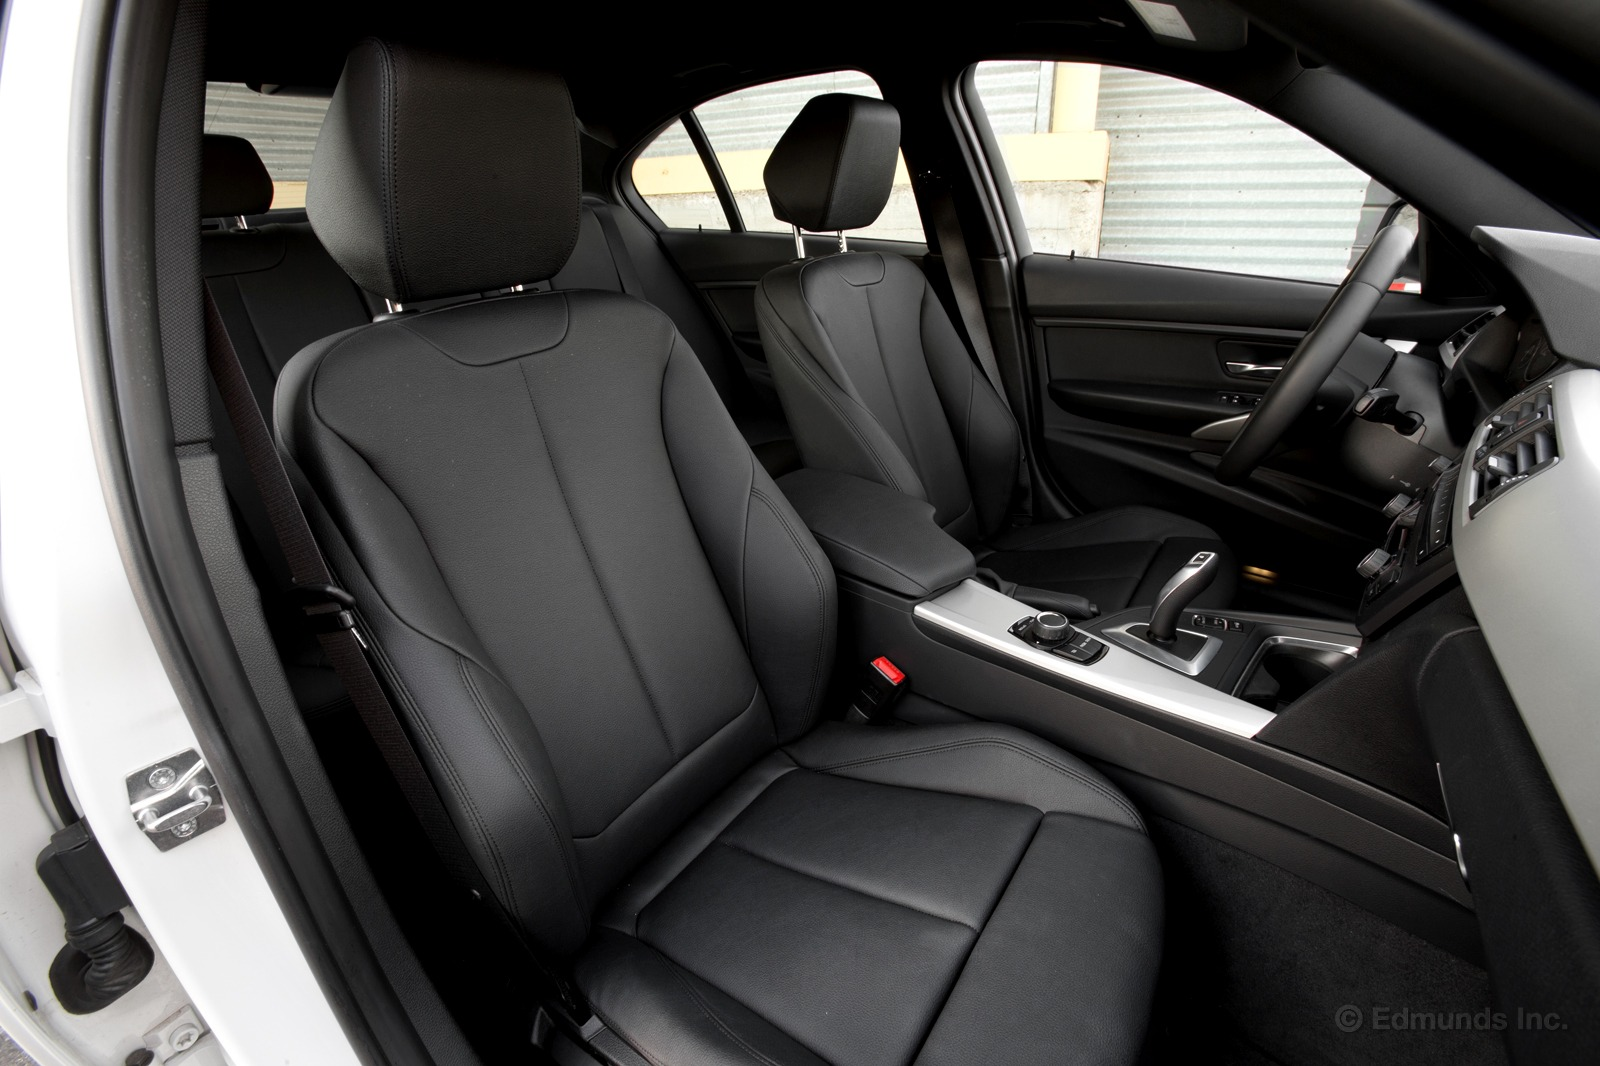 2013 bmw 320i interior male models picture -  2014 Bmw 320i Review